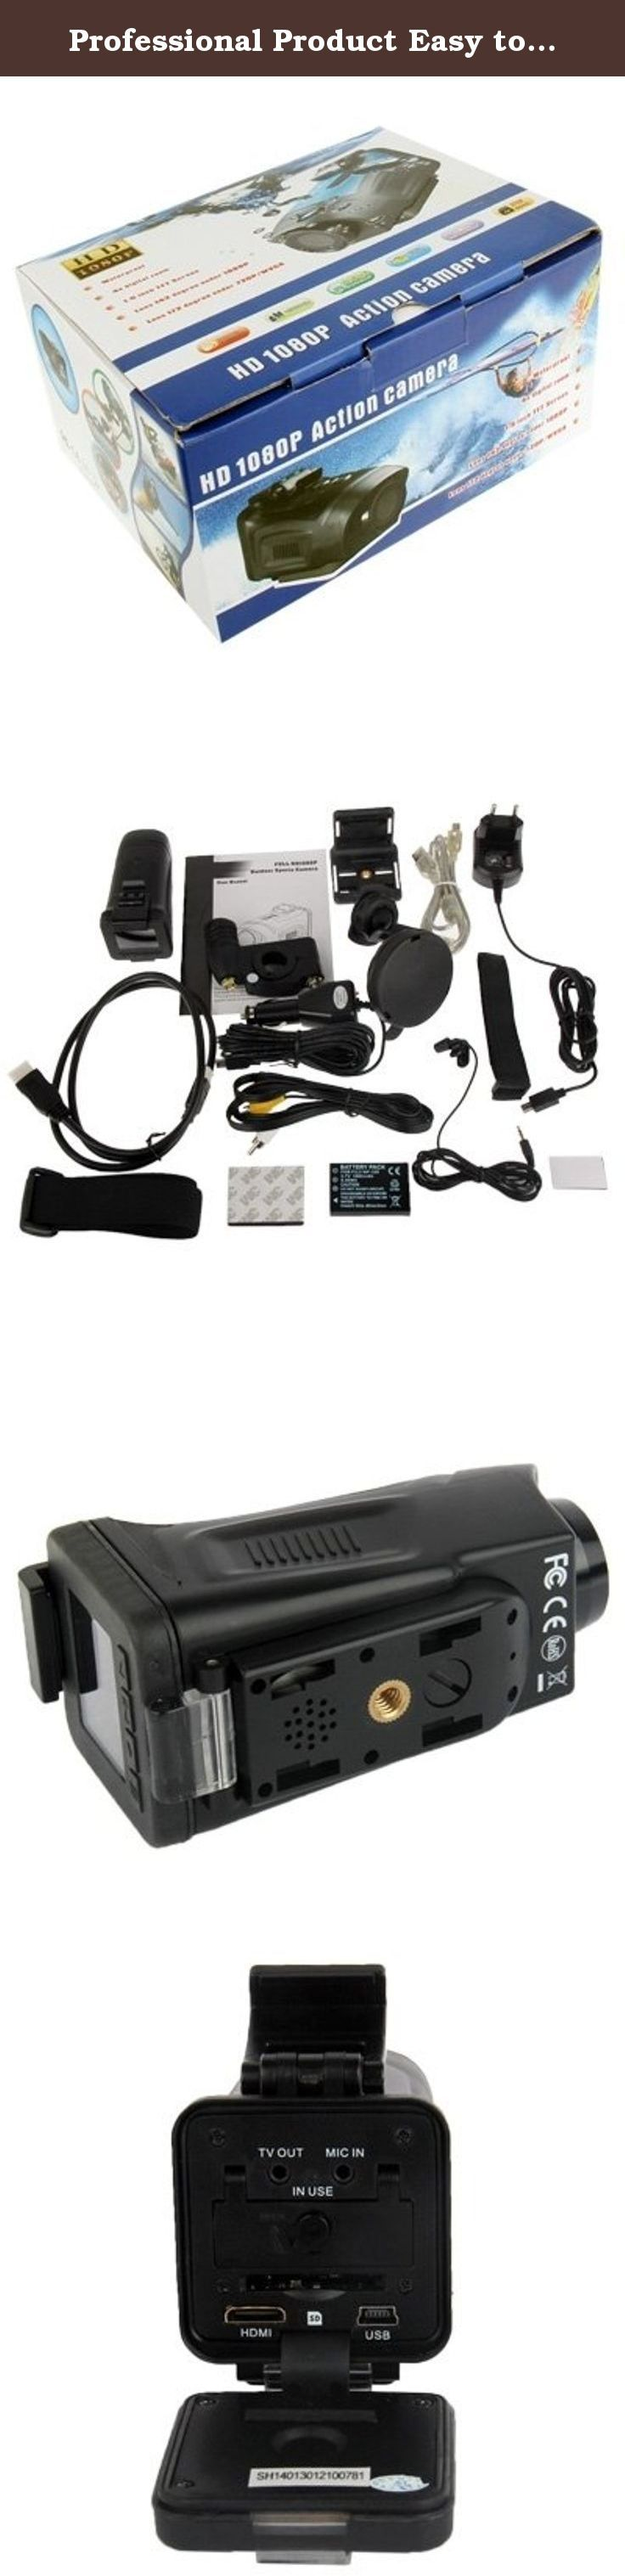 """Professional Product Easy to Use 1080P CMOS 5 Mega Pixels Sports Waterproof Digital Video Camera with 4x Digital Zoom, Support TV-Out / HDMI / SD Card. Professional Product Easy to Use 1) Lens: 150 degree wide angle 5G glass lens 2) LCD Display: 1.5"""" TFT LCD 3) Image Sensor: 5.0MP CMOS image sensor 4) Waterproof: 5 meters water resistant 5) Zoom: 4x digital zoom 6) Video Format: MOV (H.264) 7) Video Resolution: Full HD 1920 x 1080 @30fps 1080P 1440 x 1080 @25fps 720P 1280 x 720…"""